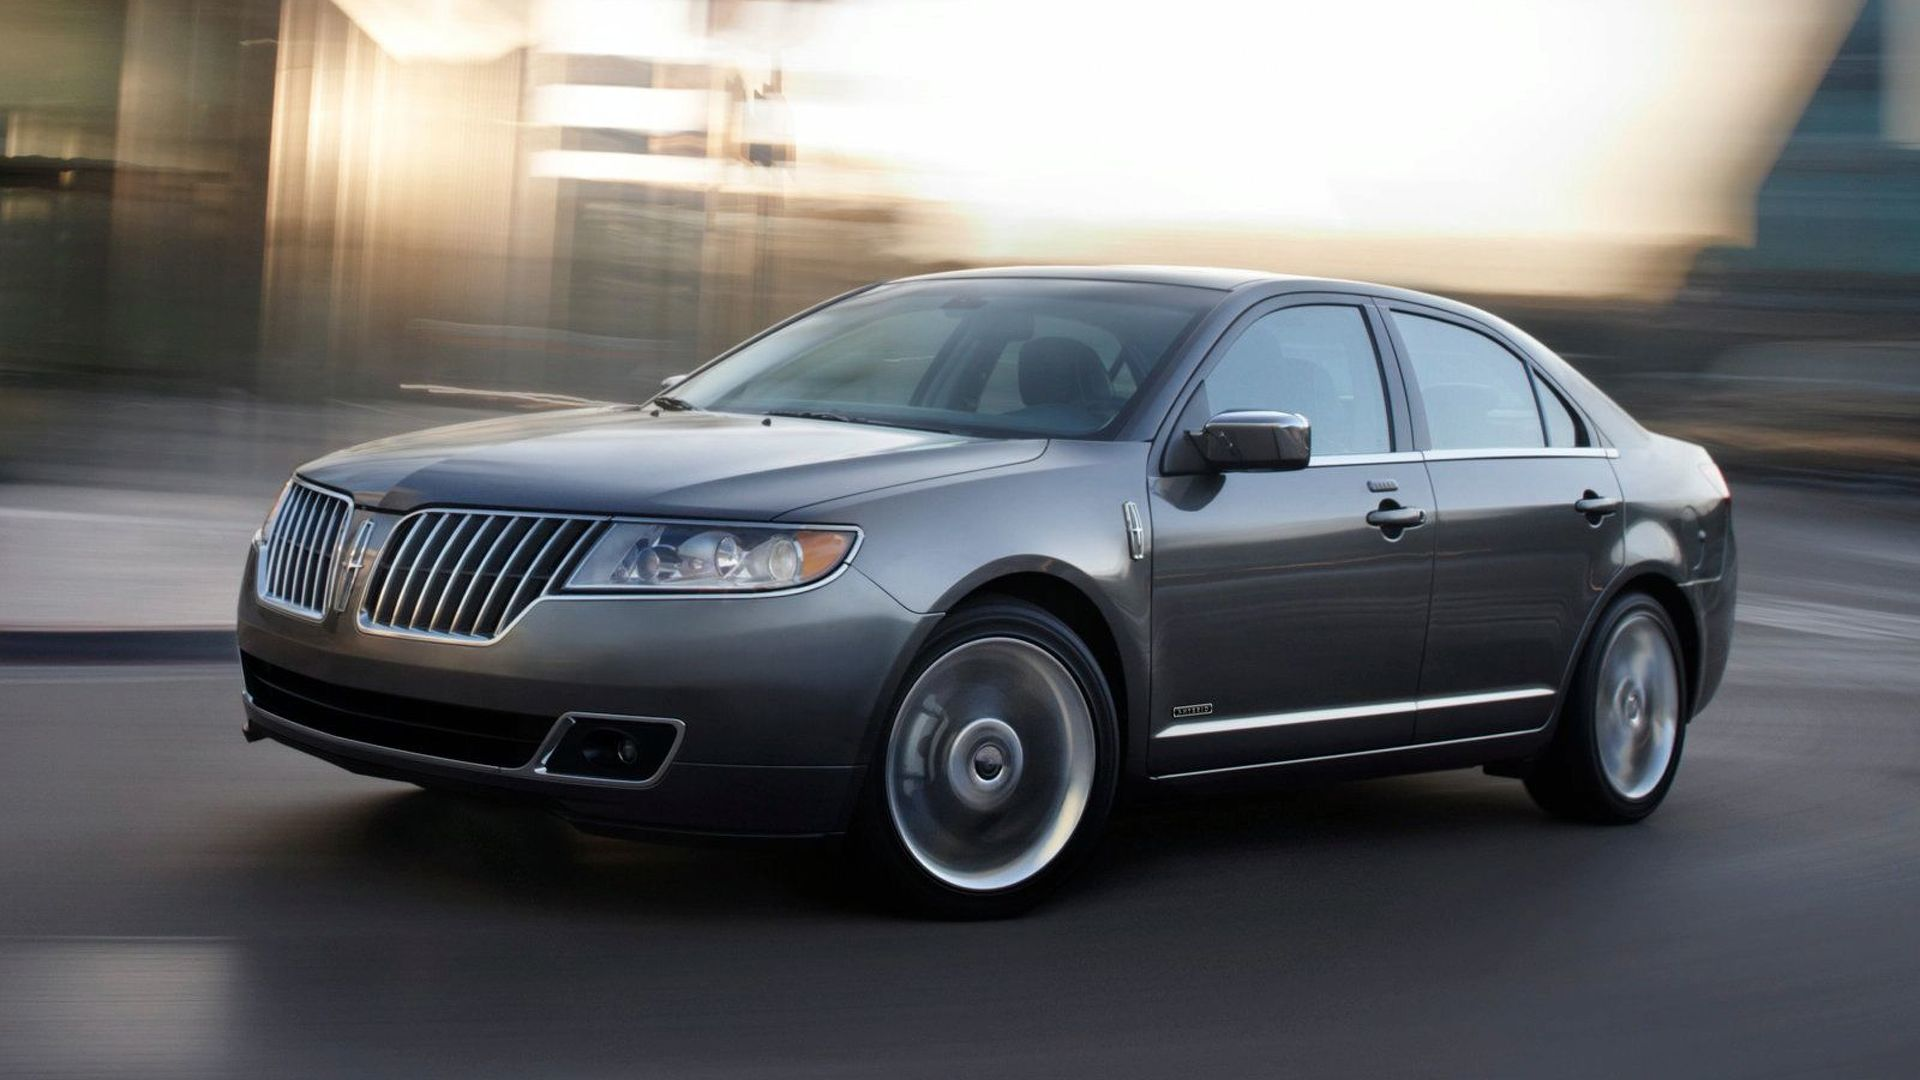 2011 lincoln mkz hybrid revealed for new york introduction. Black Bedroom Furniture Sets. Home Design Ideas